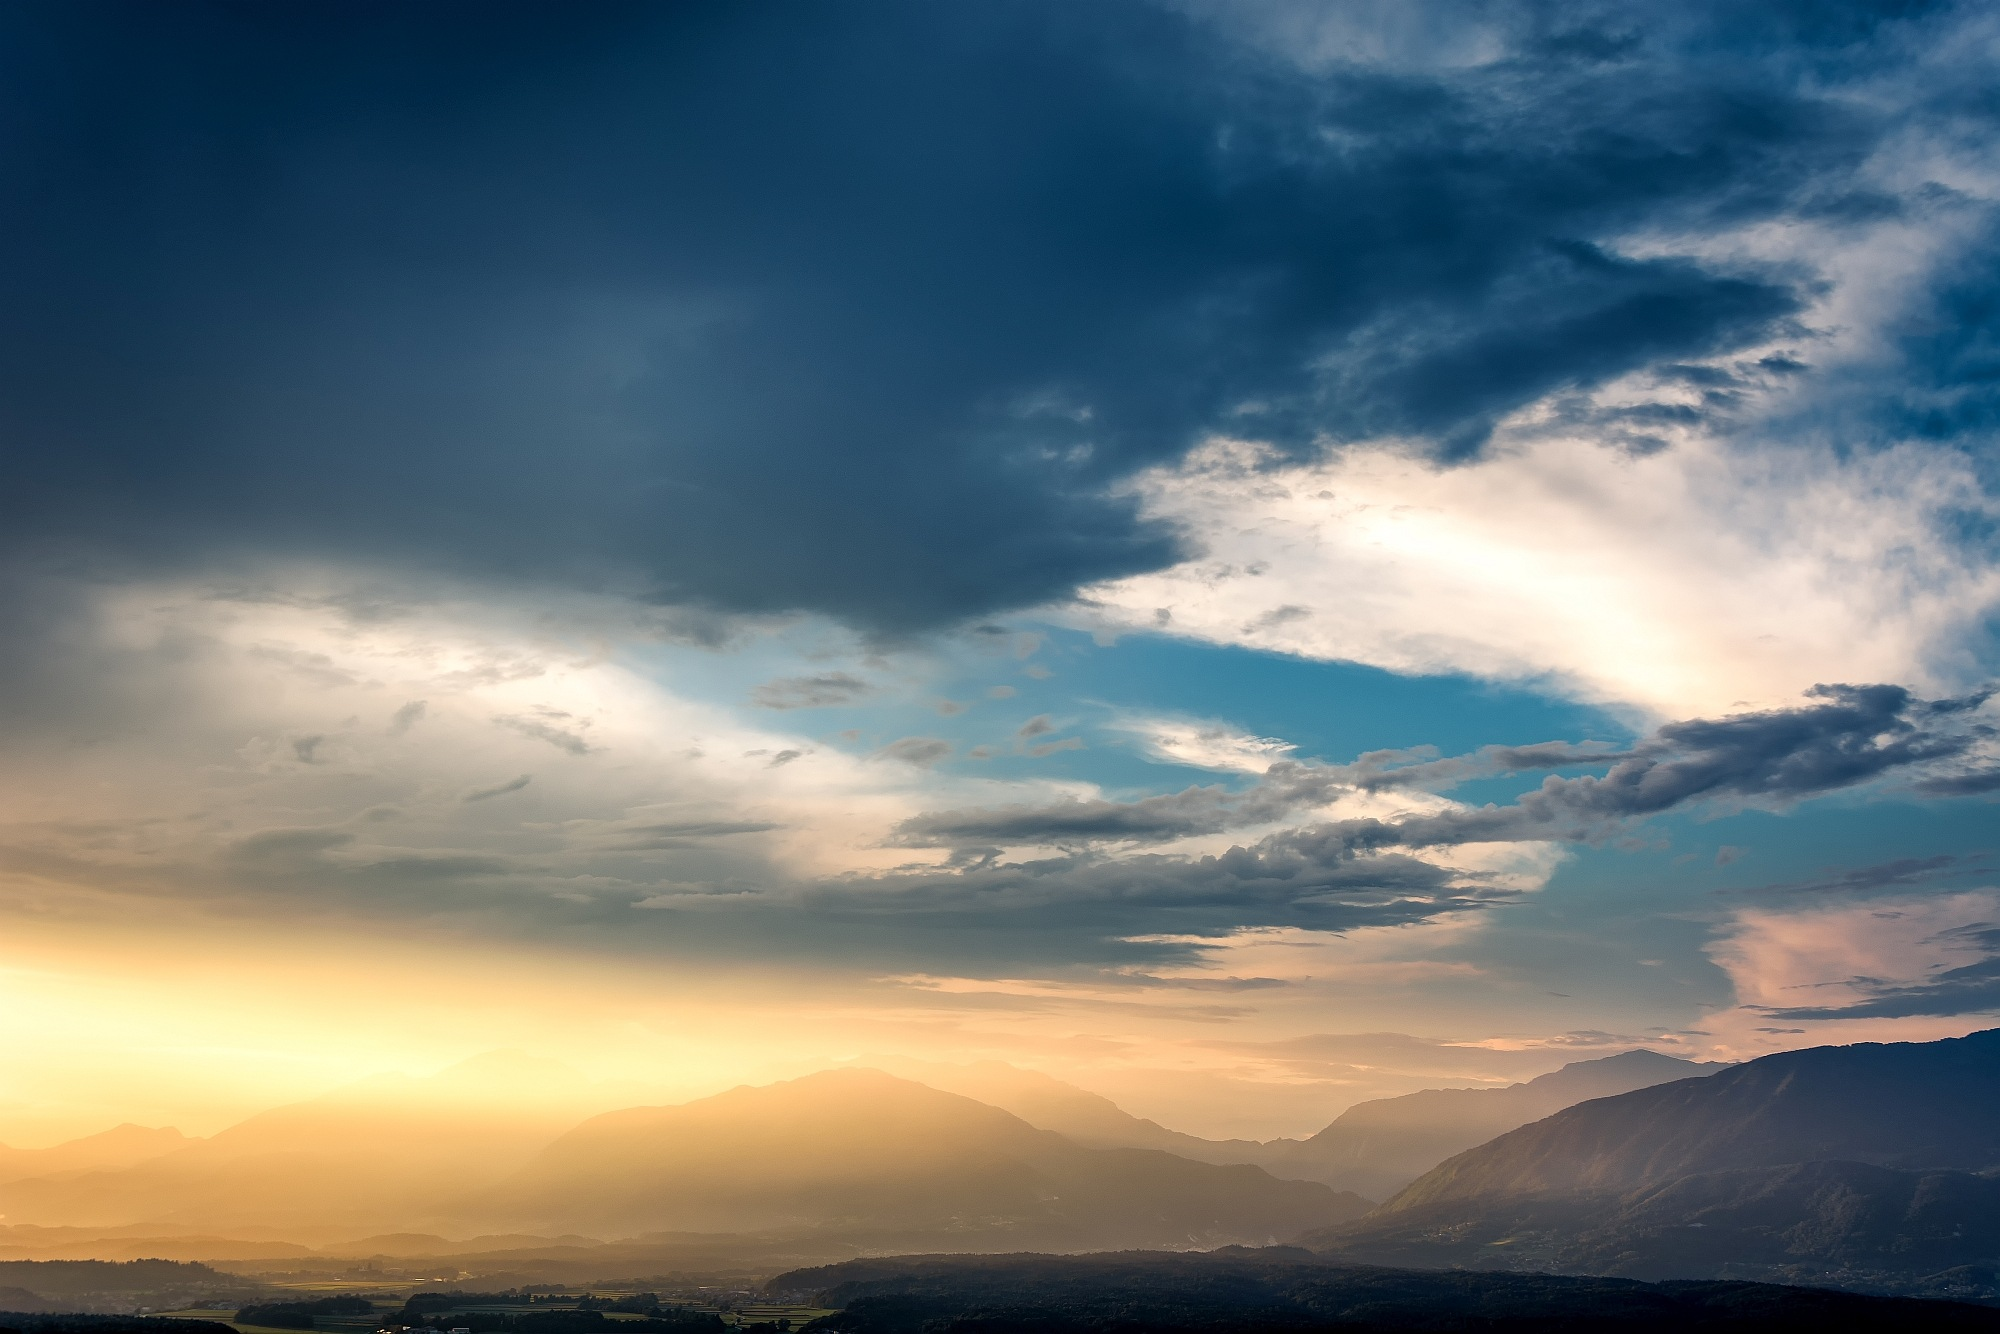 Sunset before the storm by Dragan Gavranovic